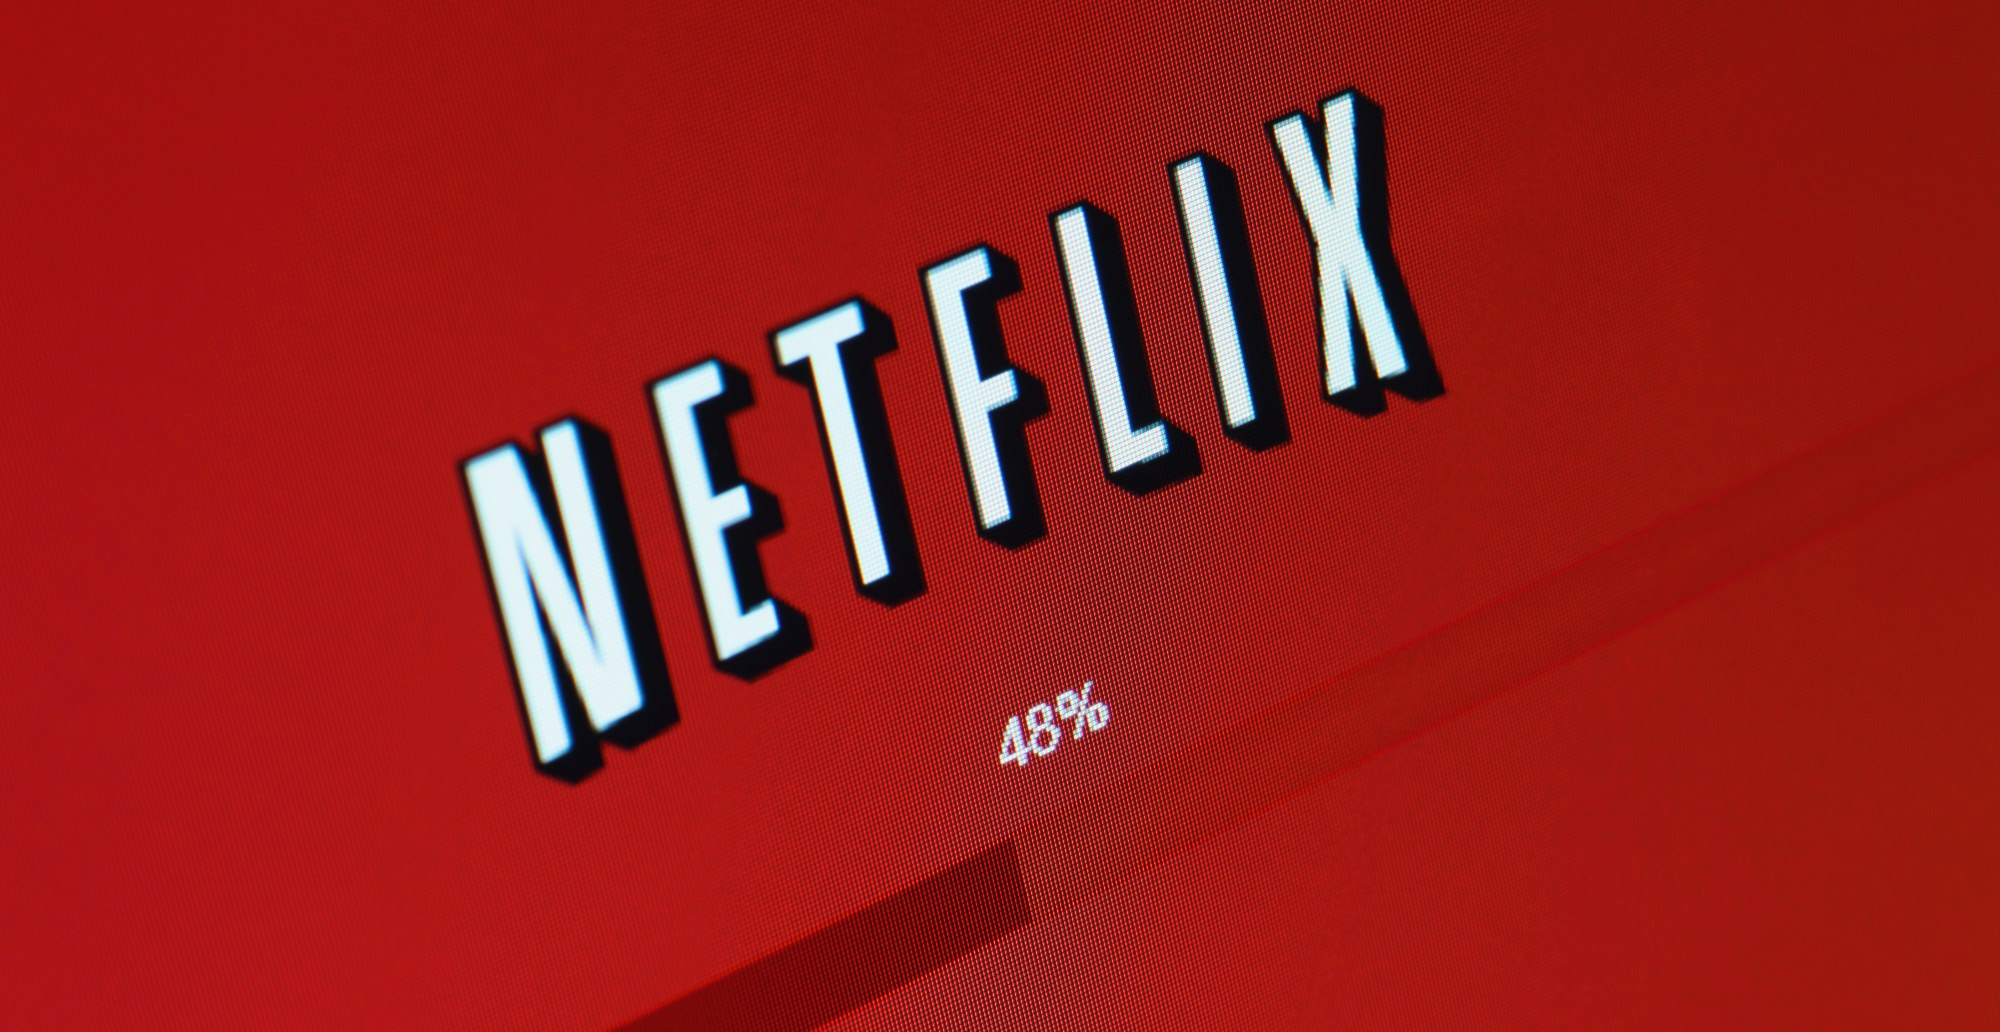 Netflix Is Now 40x More Popular Than Porn In Hotel Room Entertainment